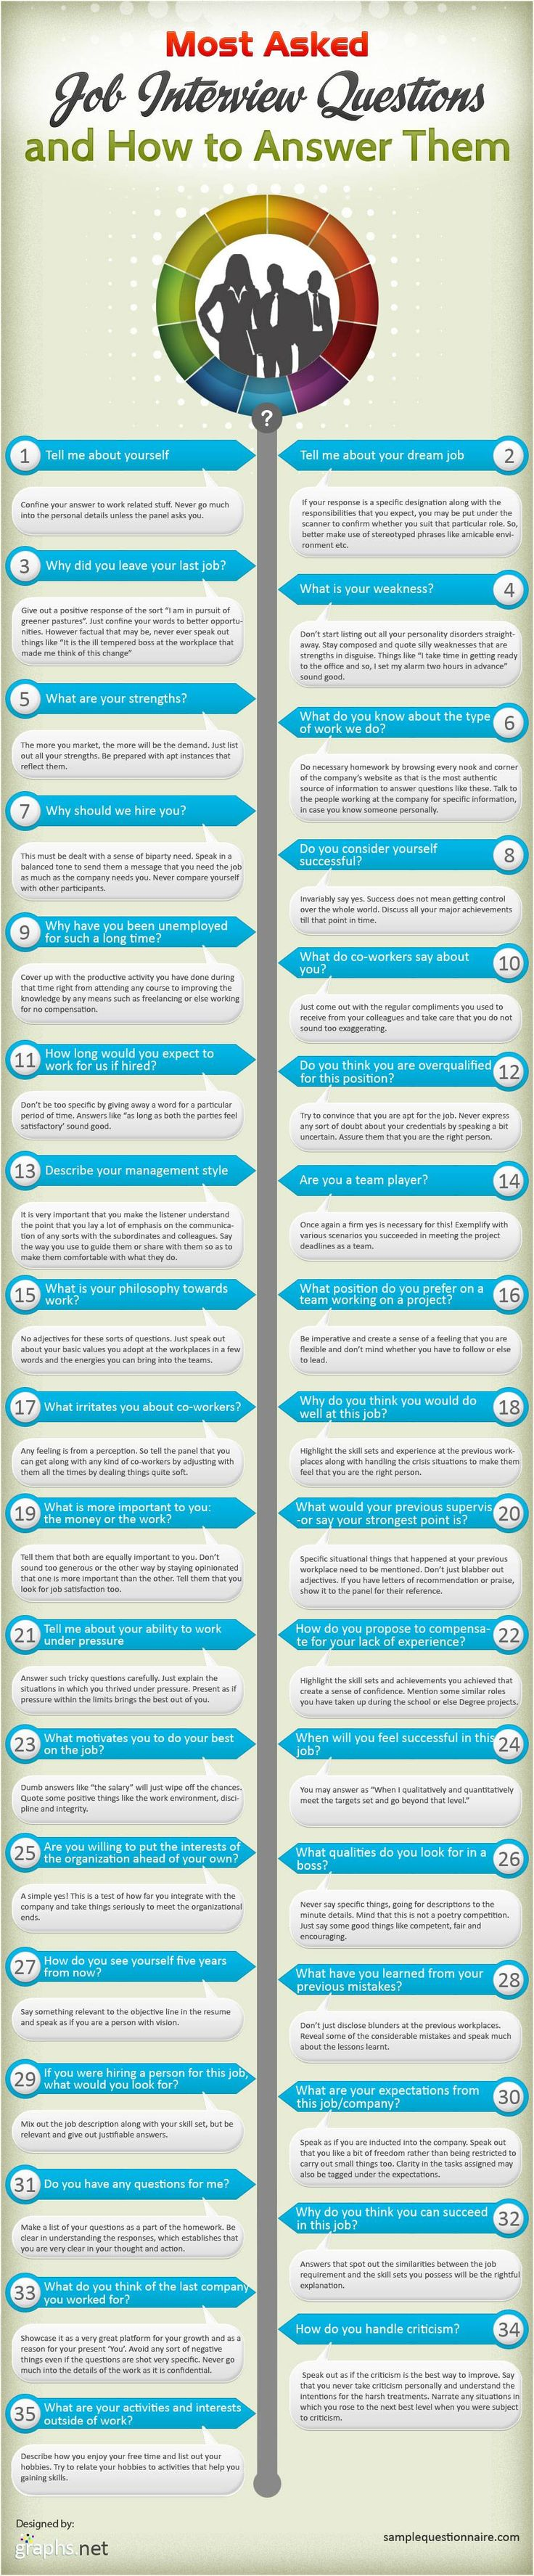 typical job interview questions and how to answer them